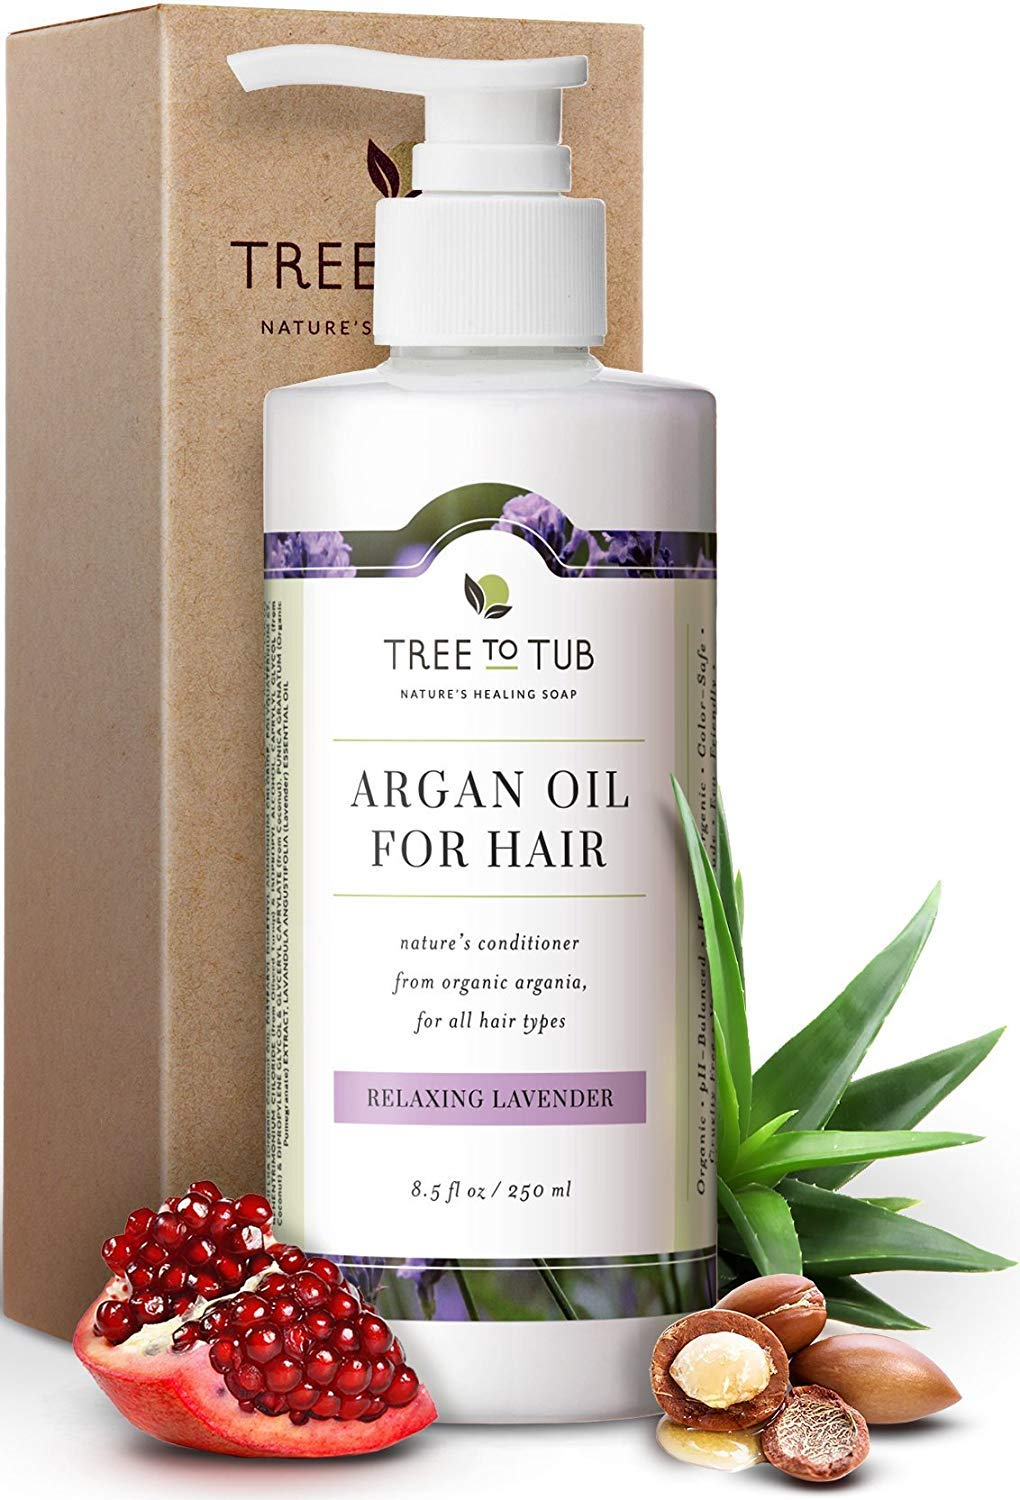 Real, Organic Hair Conditioner For Dry Hair, The Only pH 5.5 Balanced Lavender Sulfate Free Conditioner For Sensitive Skin – Hair Conditioner For Damaged Hair With Fresh Eco-Friendly Wild Soapberries